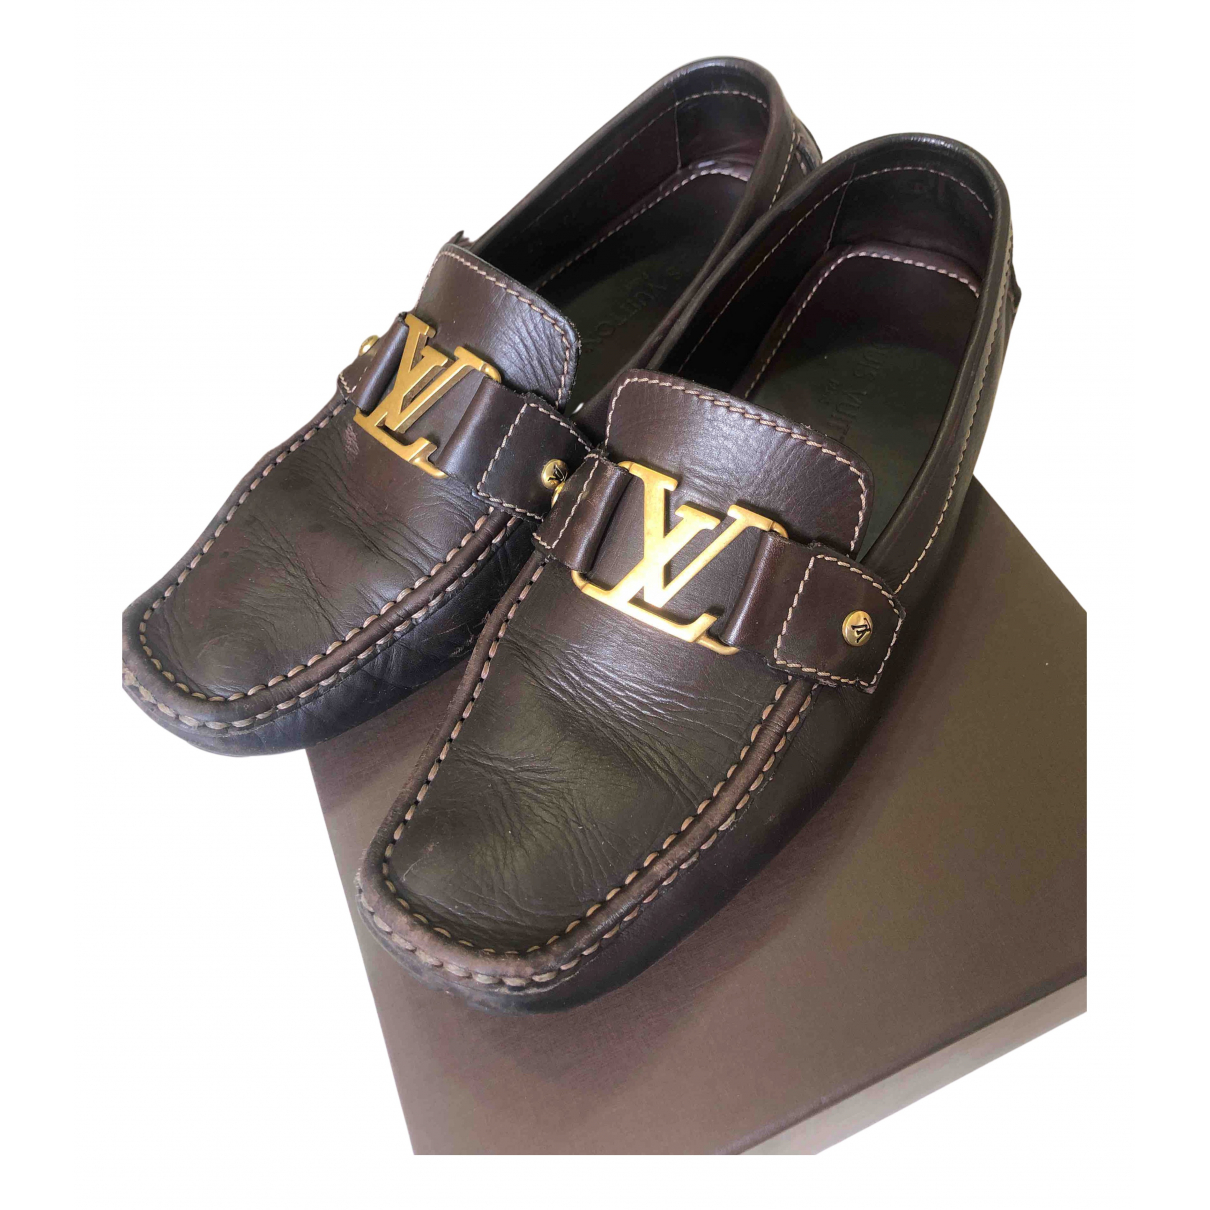 Louis Vuitton N Brown Leather Flats for Men 8.5 UK